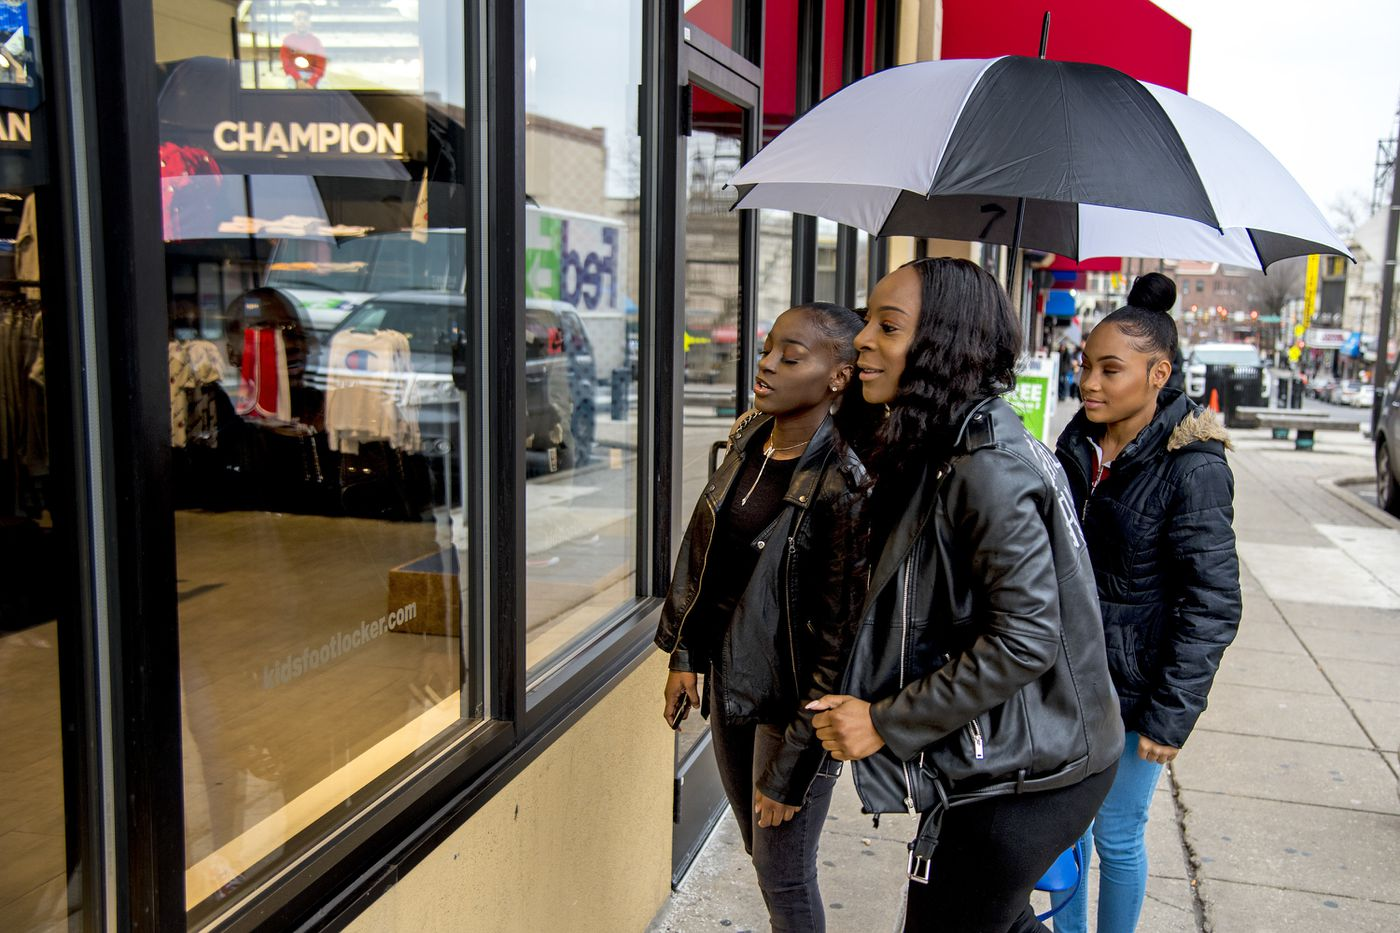 Years ago, Portia Smith (center) suffered postpartum depression and feared seeking care because of child welfare involvement. She window shops with daughters Nelly Smith (left), 19, and Najai Jones-Smith (right), 15.